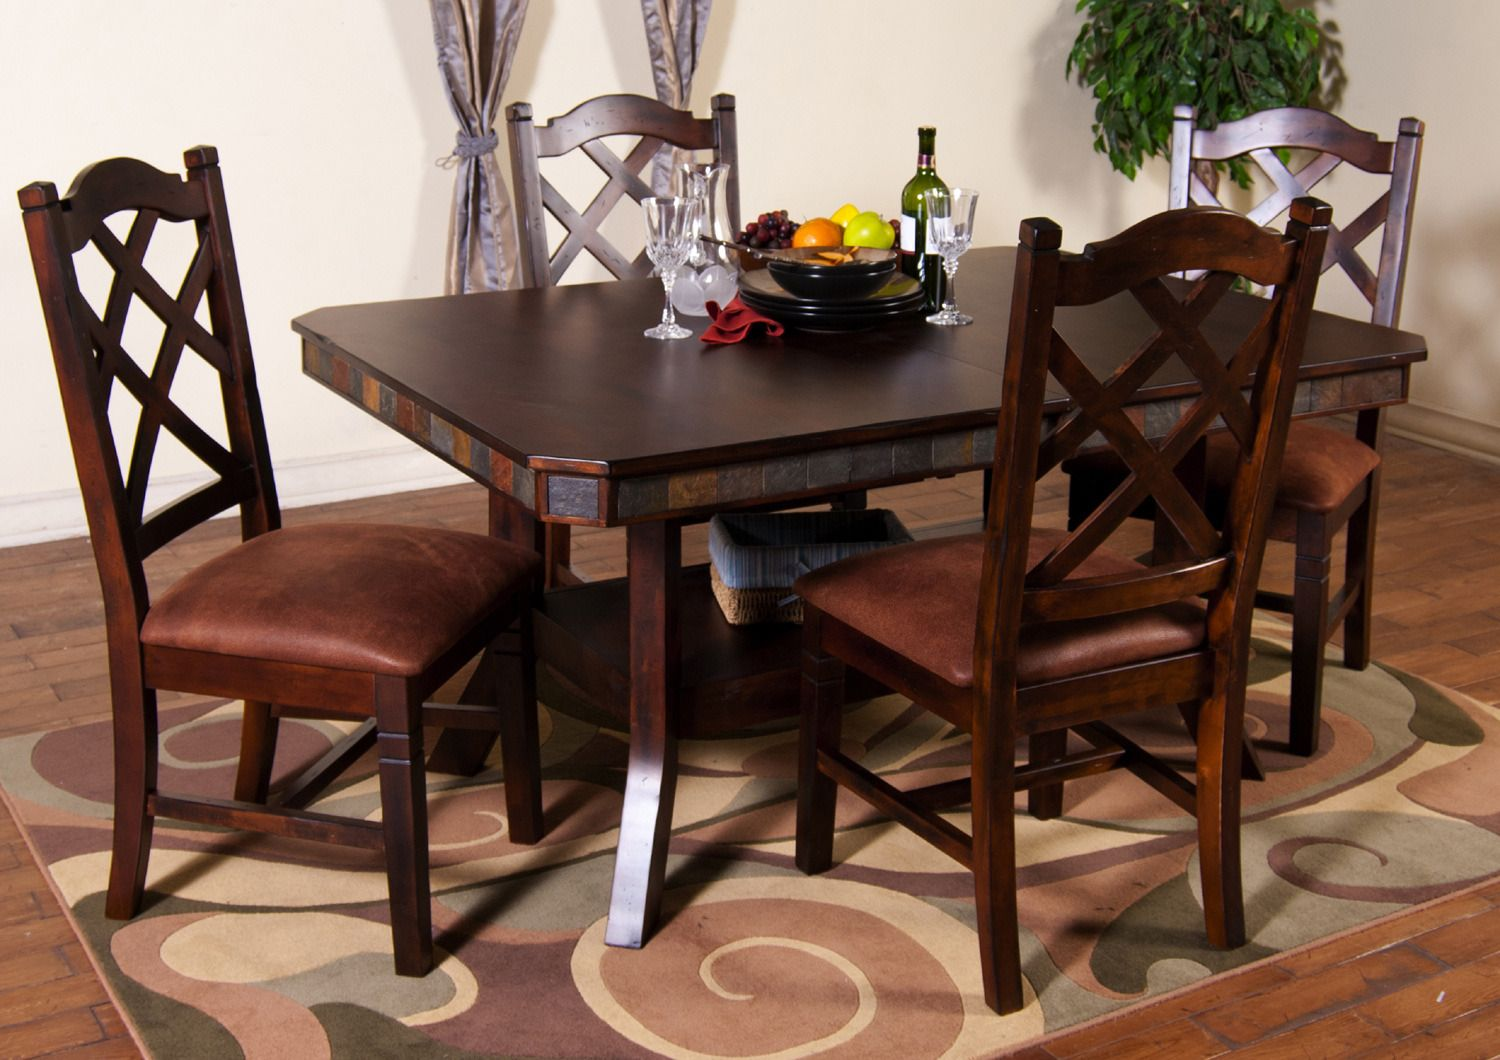 Dining Room Extension Table Amazing Santa Fe Rectangular Extension Table Dining Room Set  Sunny 2018